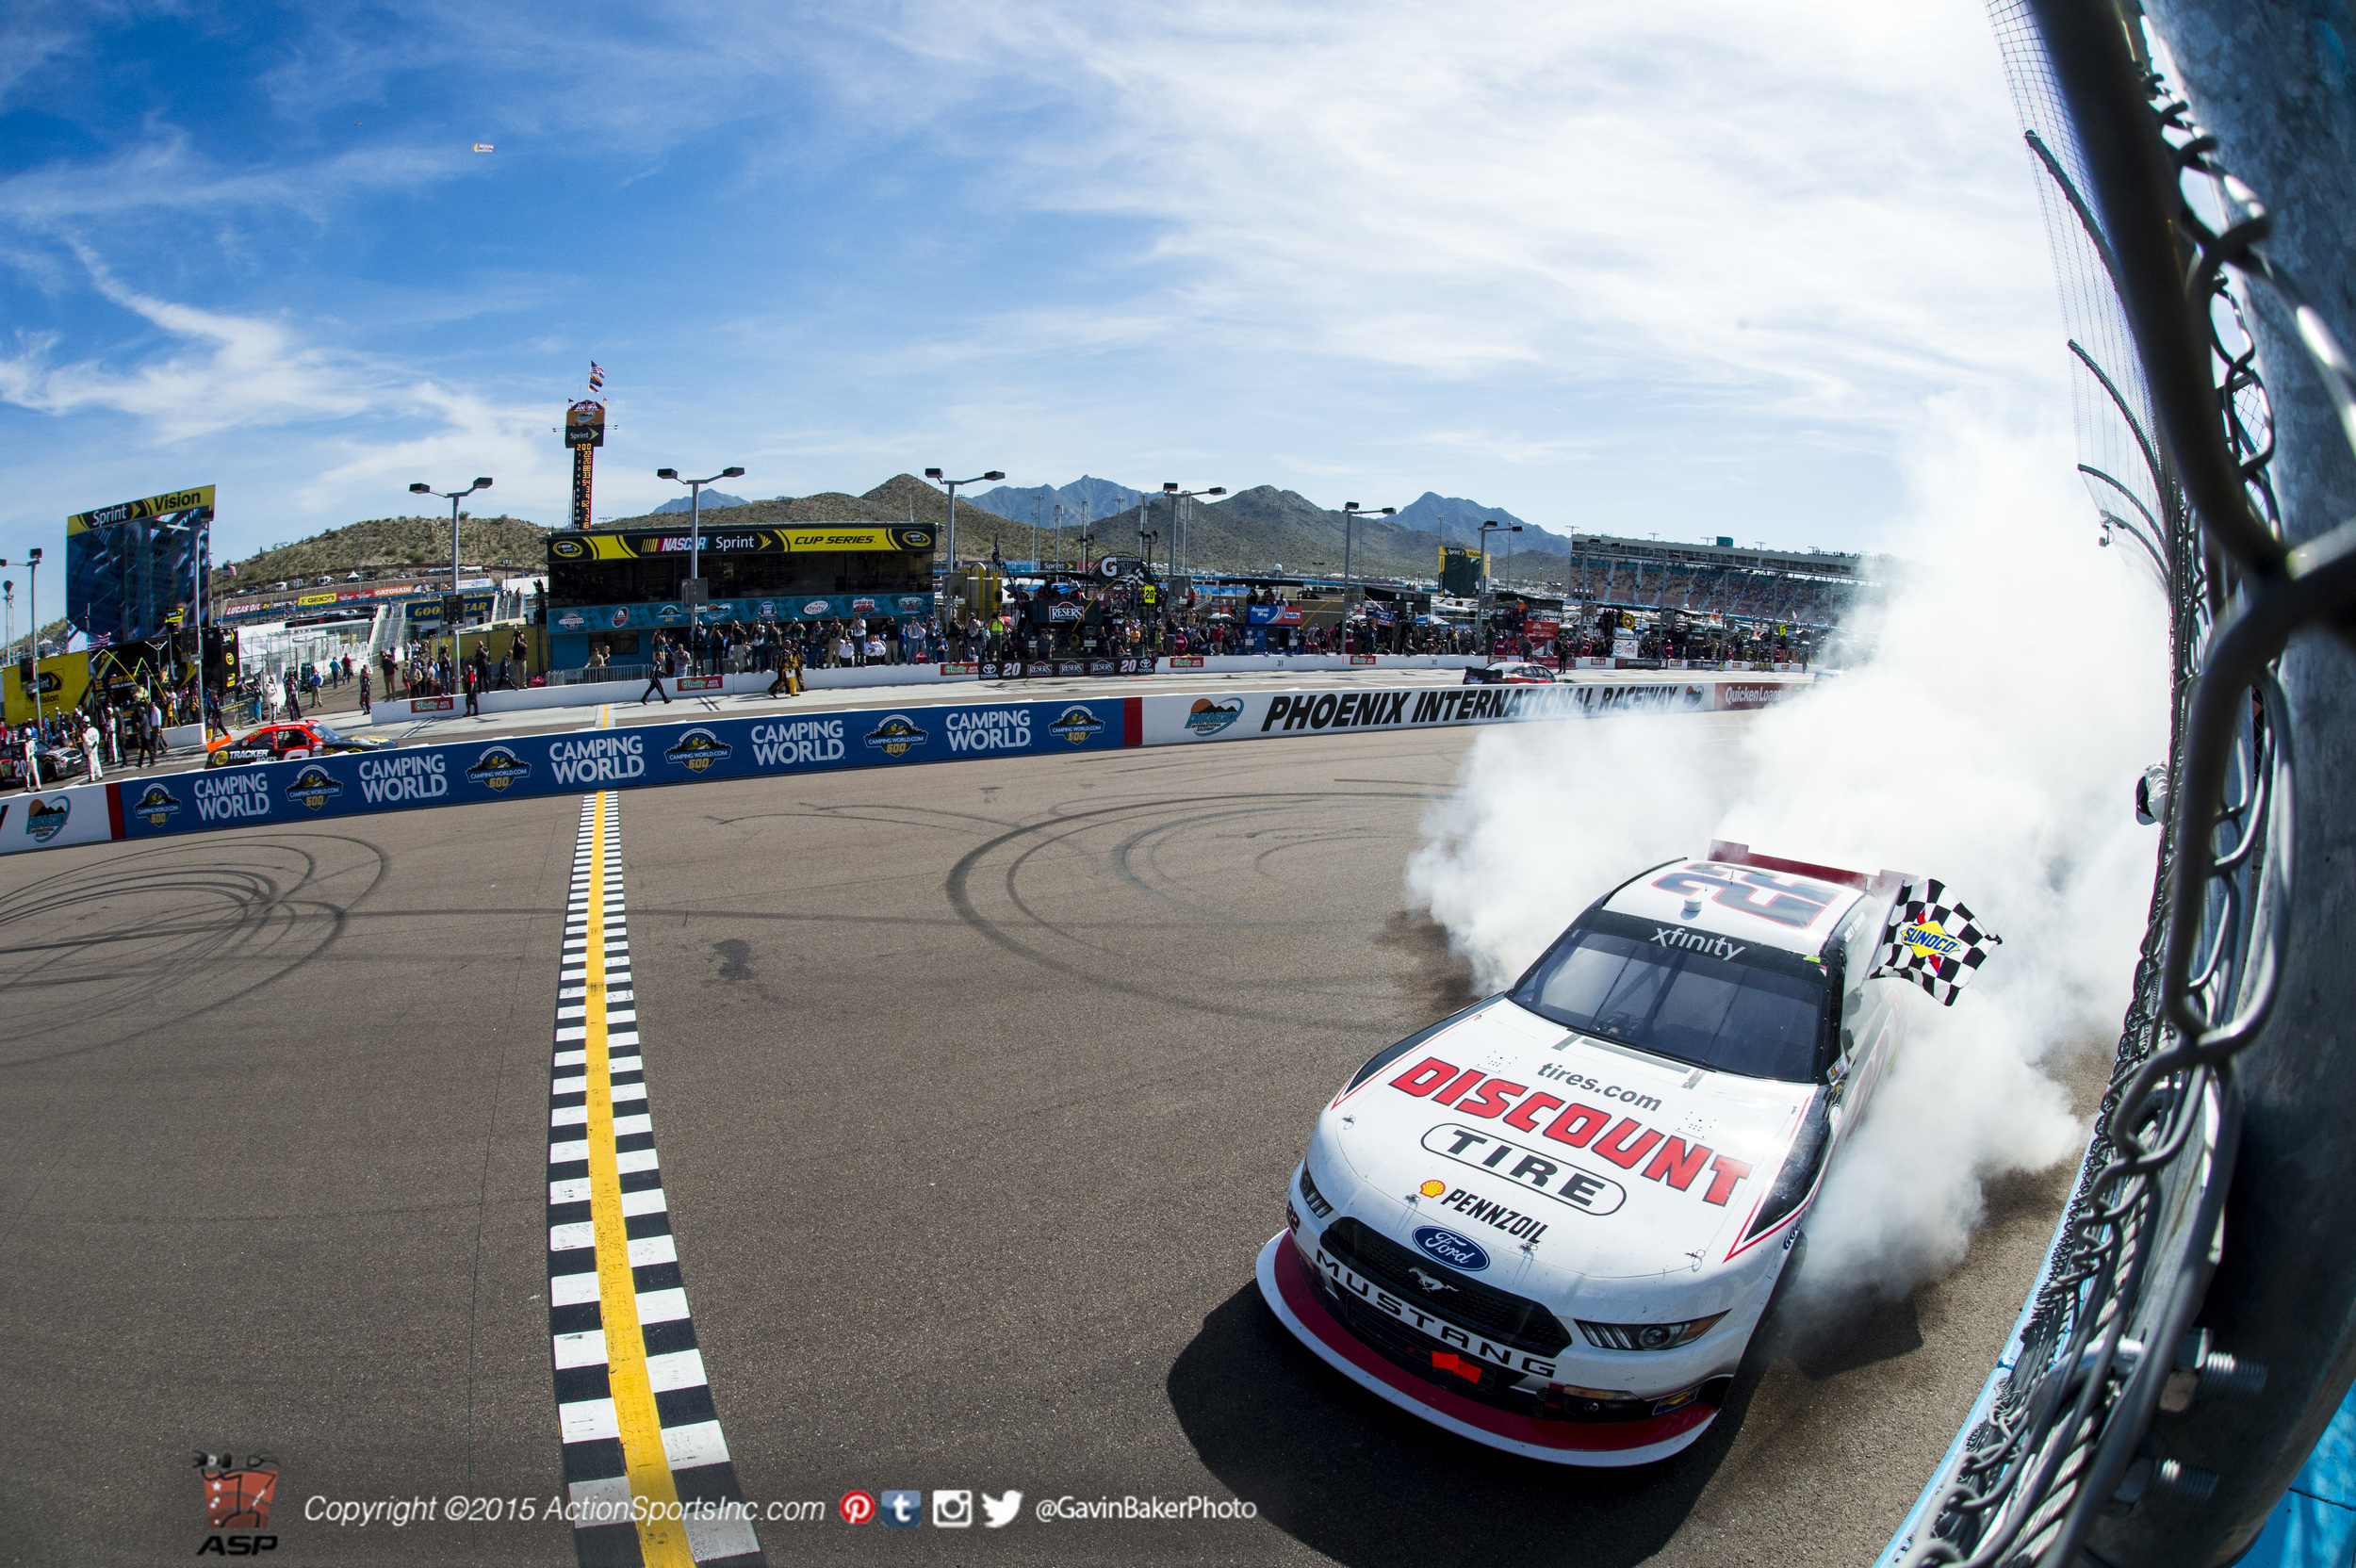 Joey Logano  collects the checkered flag as he does a burnout along the front stretch after winning theAxalta 200 Xfinity series race at Phoenix International Raceway in Avondale , AZ.